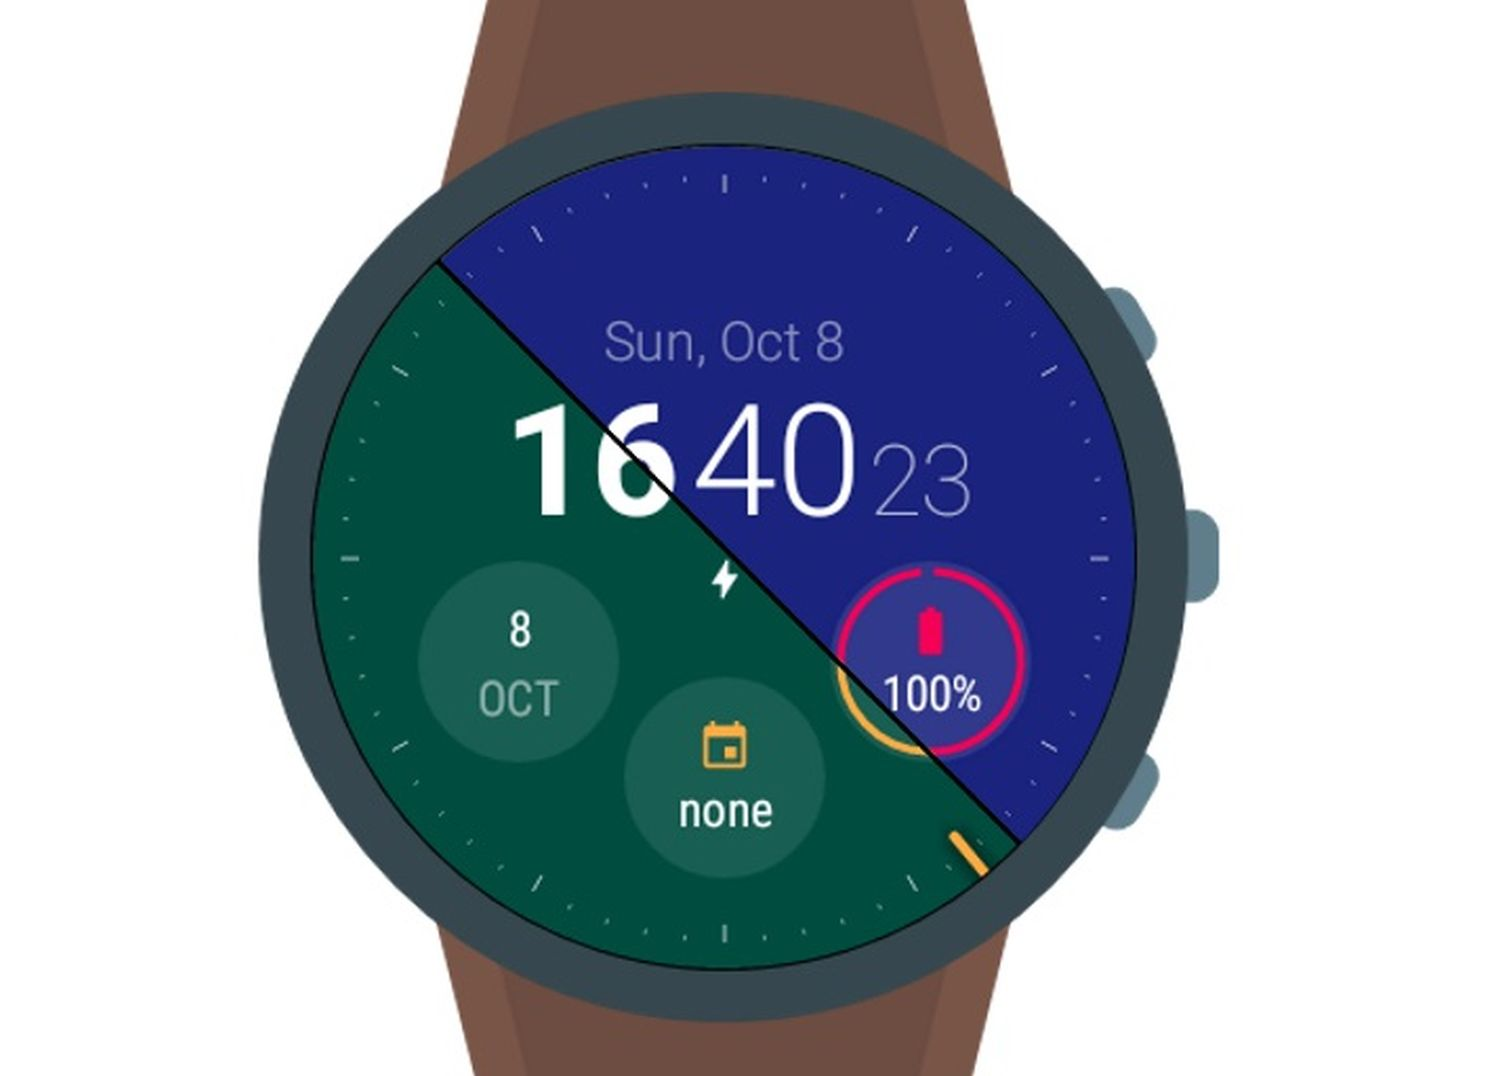 material style watch face cover